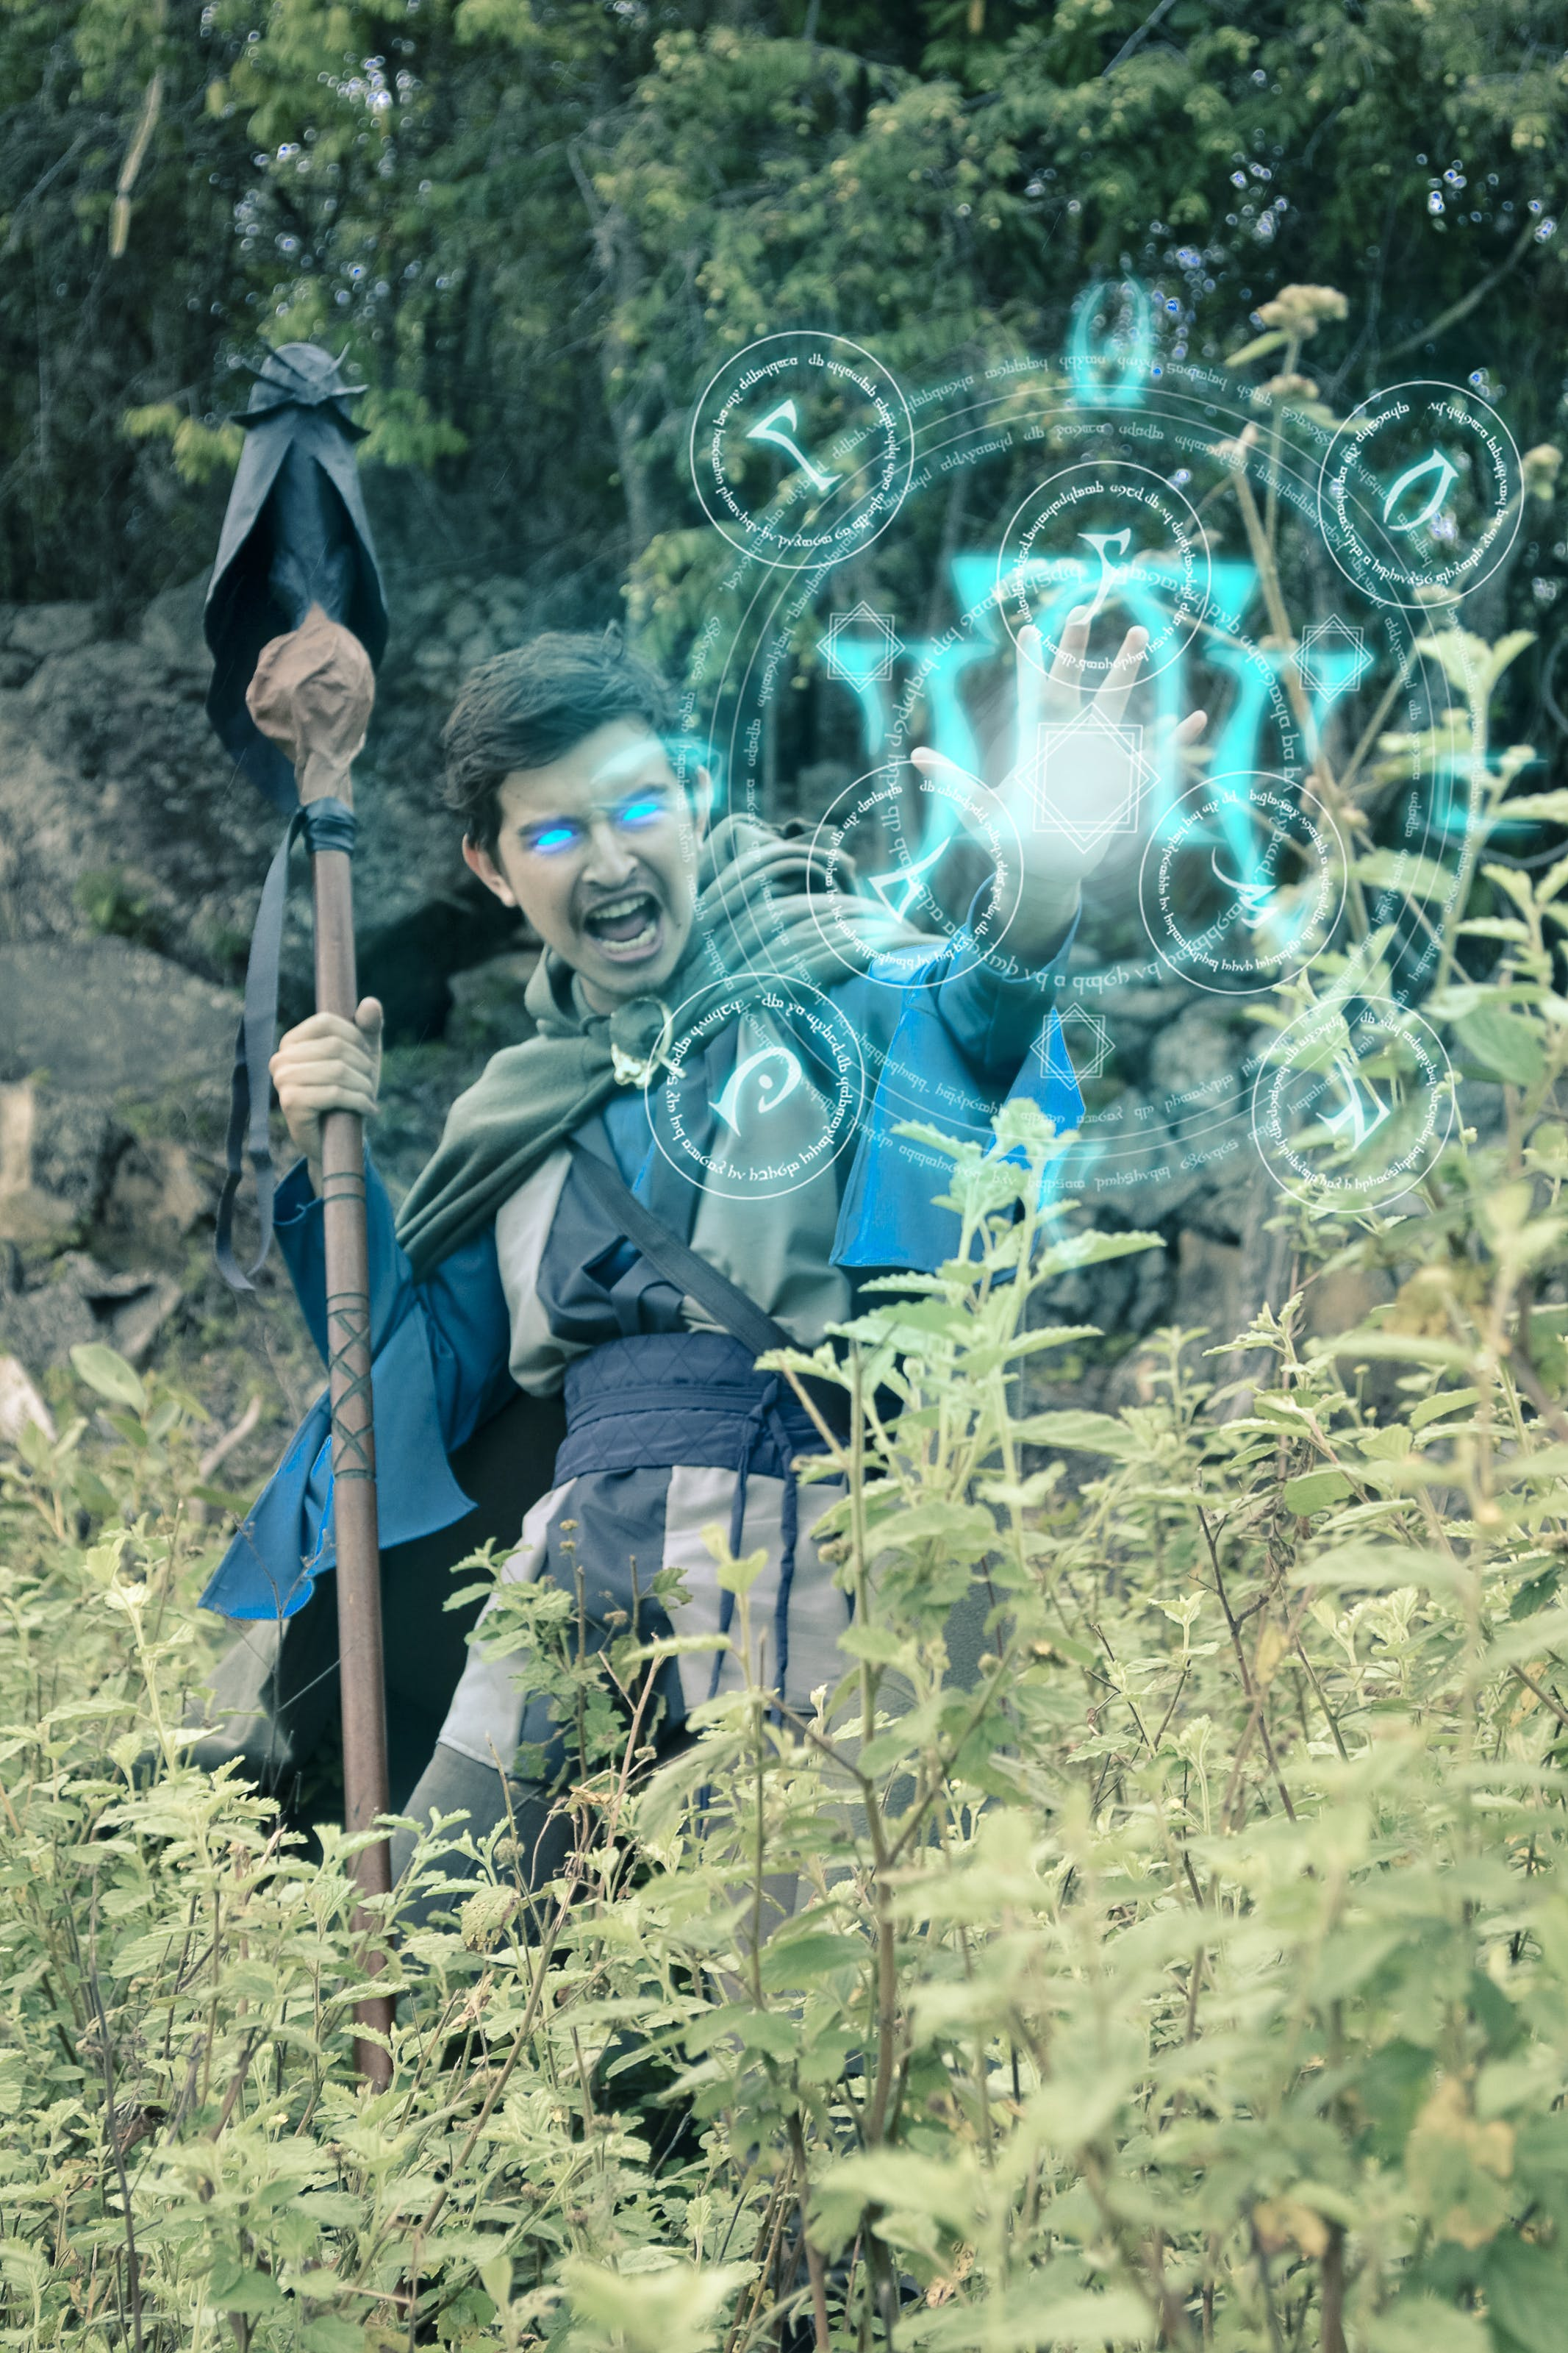 Free stock photo of cosplay, Cosplayer, covacosplay, khadgar